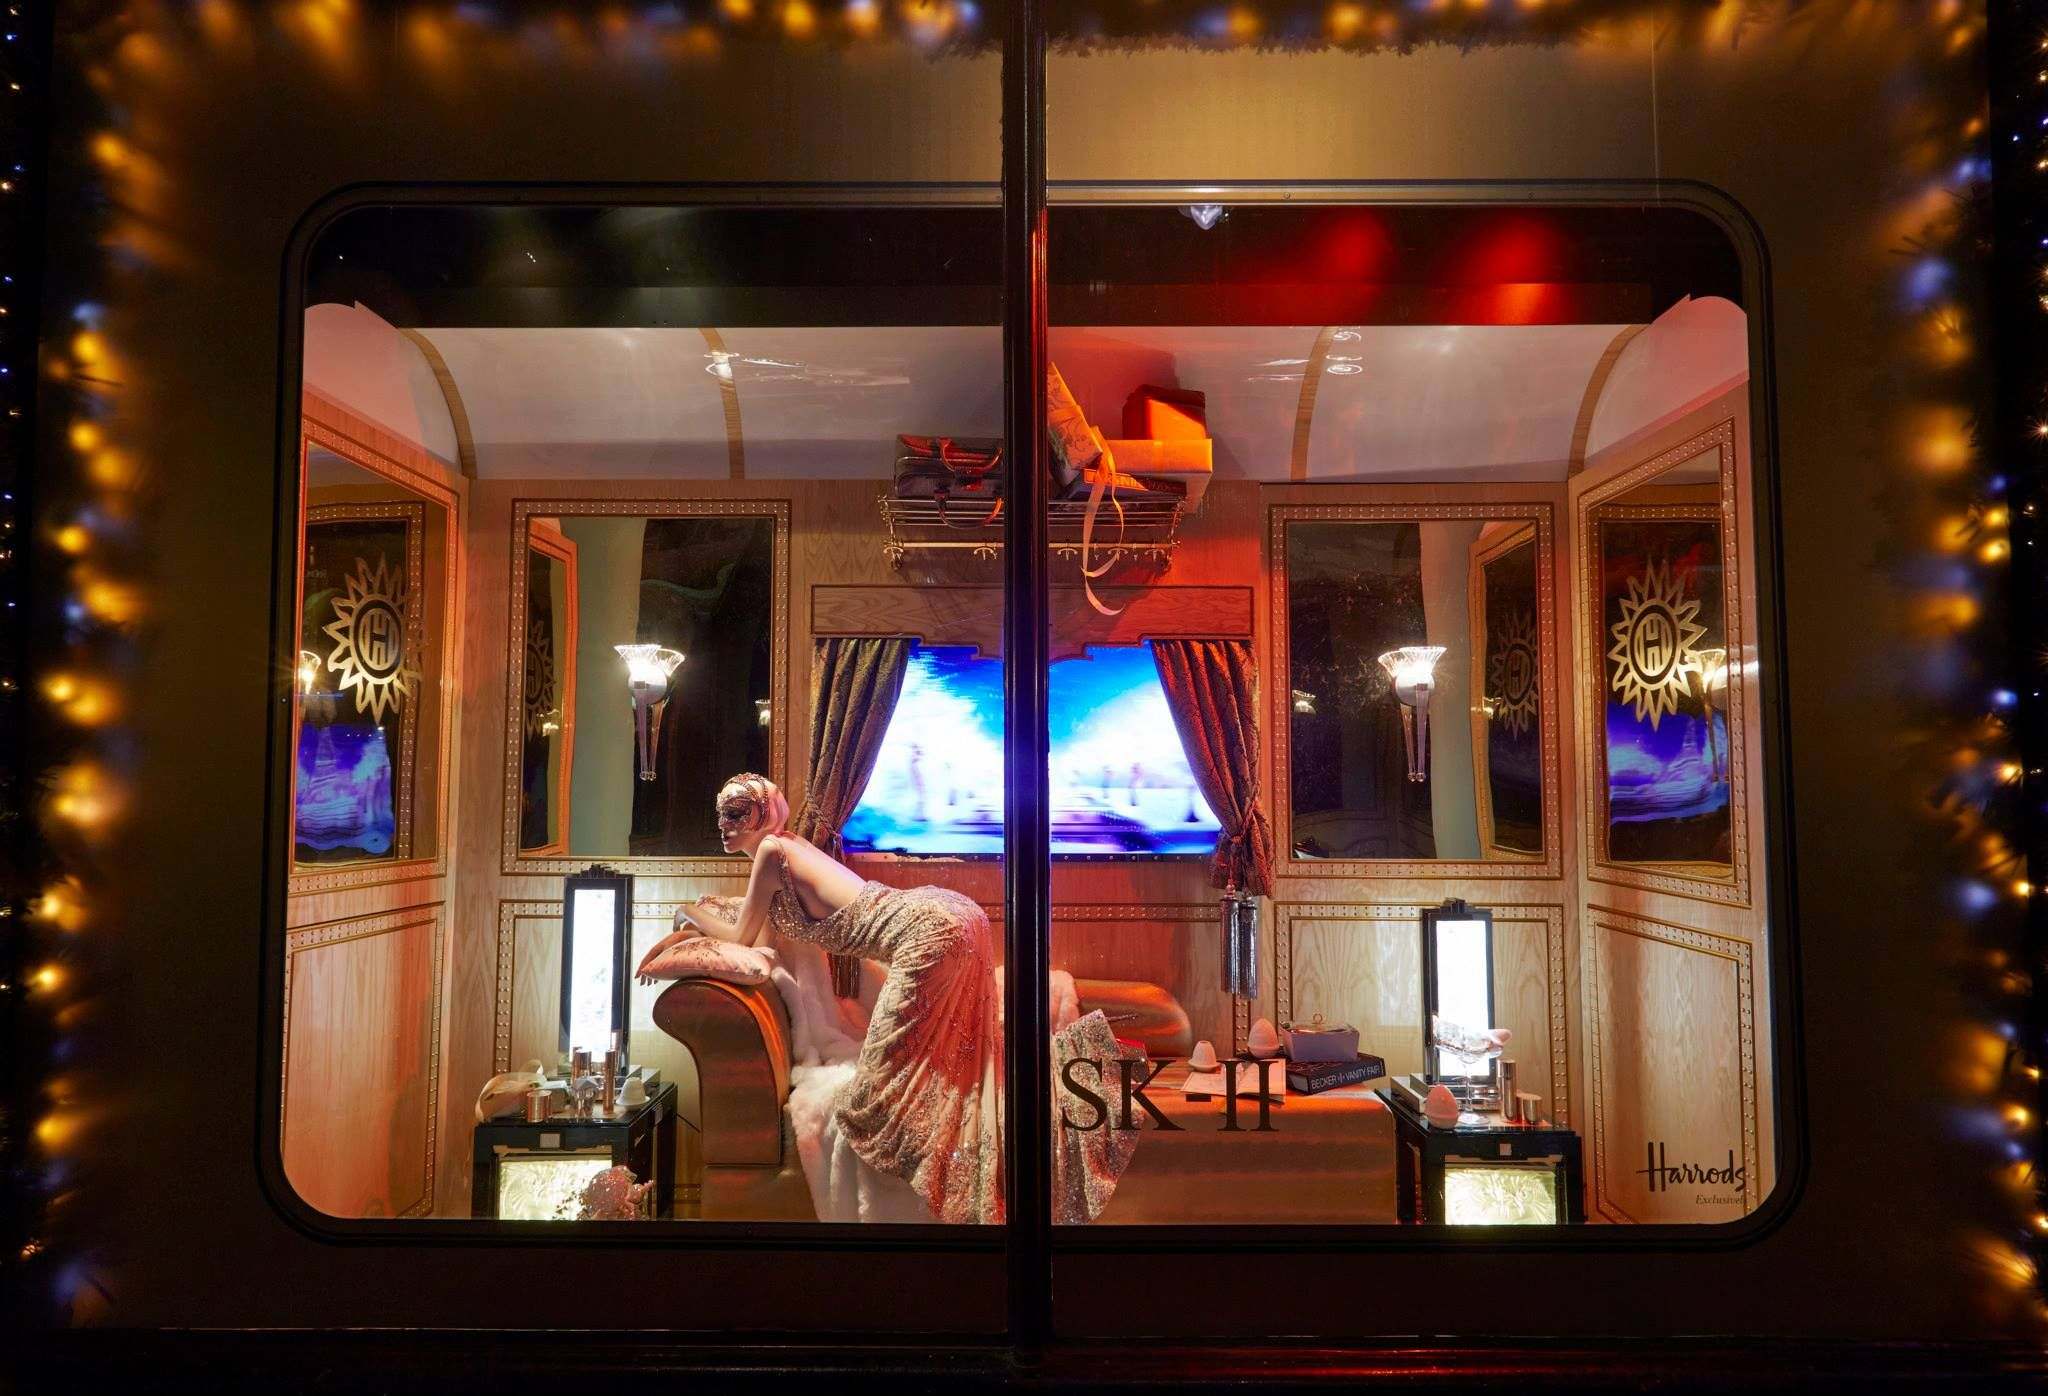 #AD361E Christmas Windows At Harrods Arrived At An Appropriate  6429 décoration noel harrods 2048x1396 px @ aertt.com